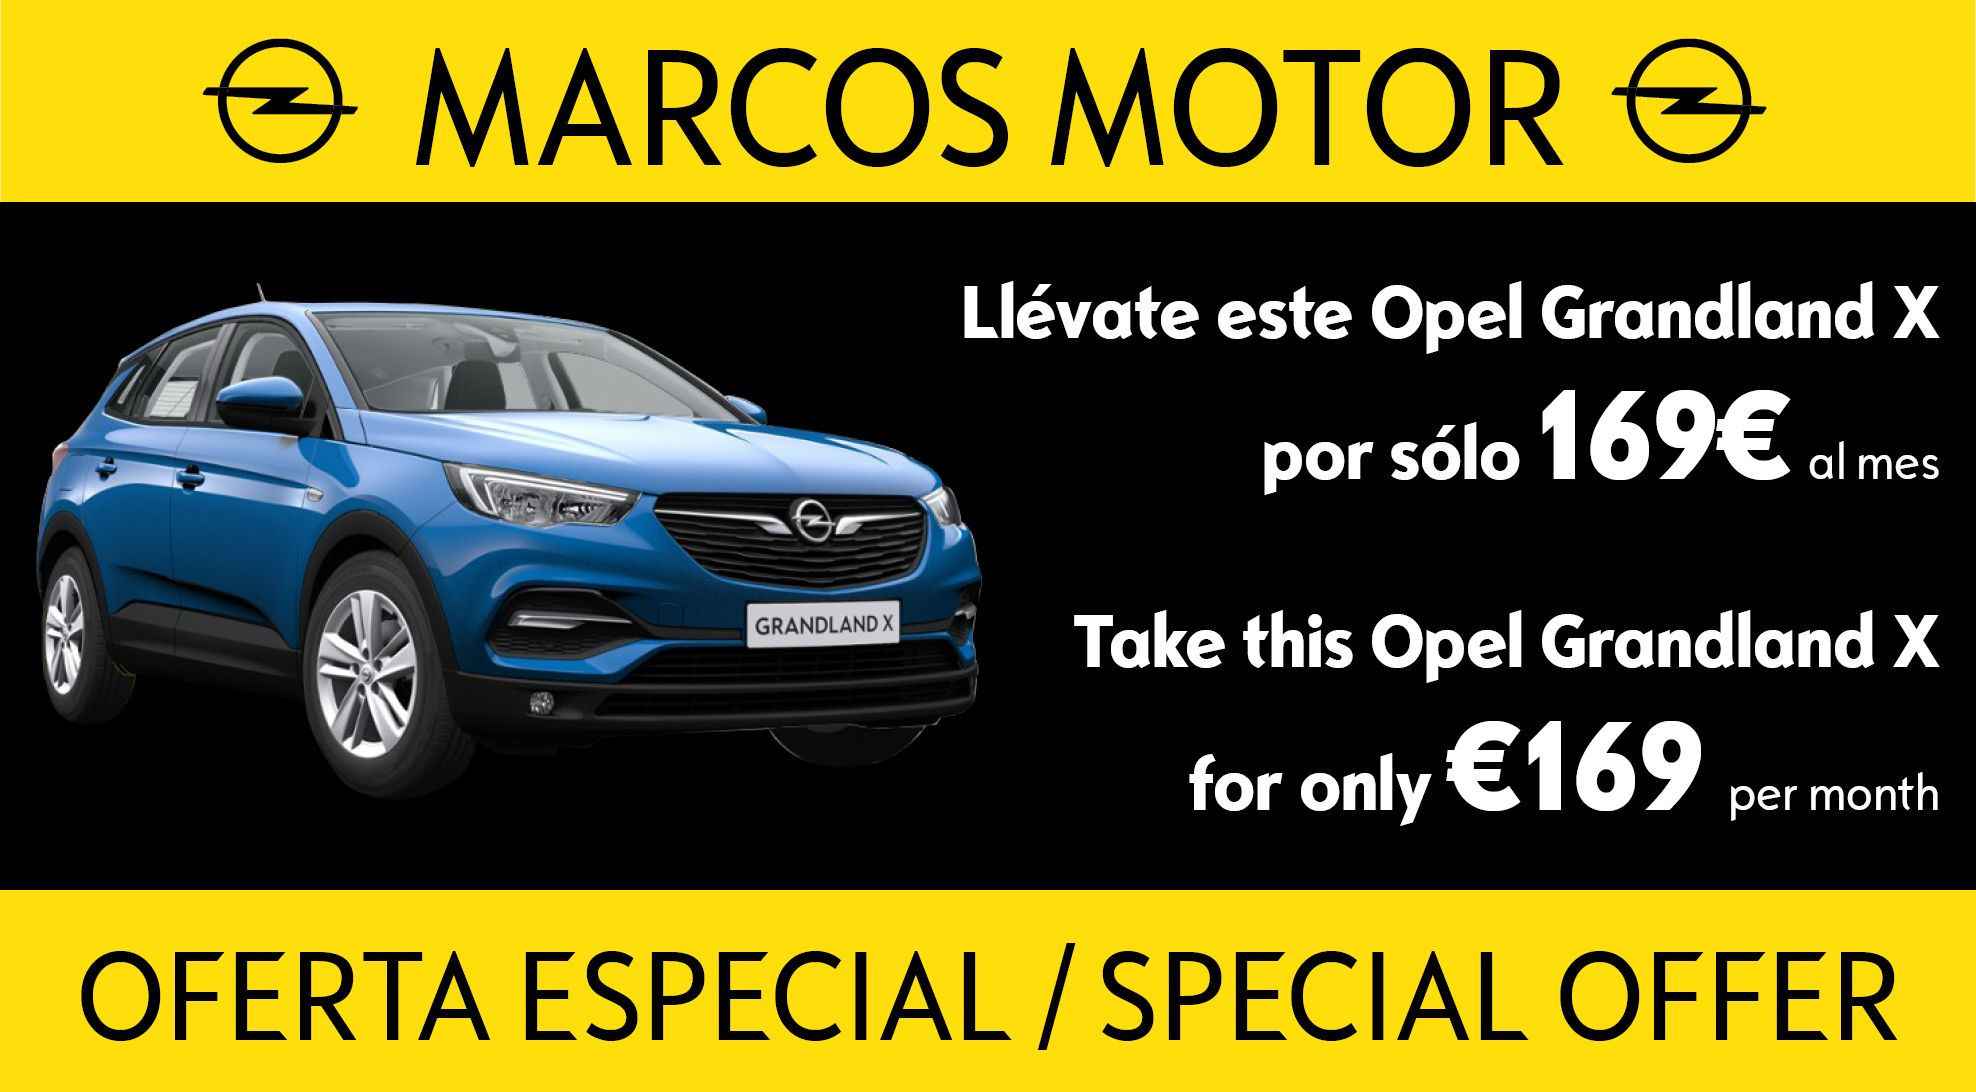 Opel Corsa Offer €169 per month